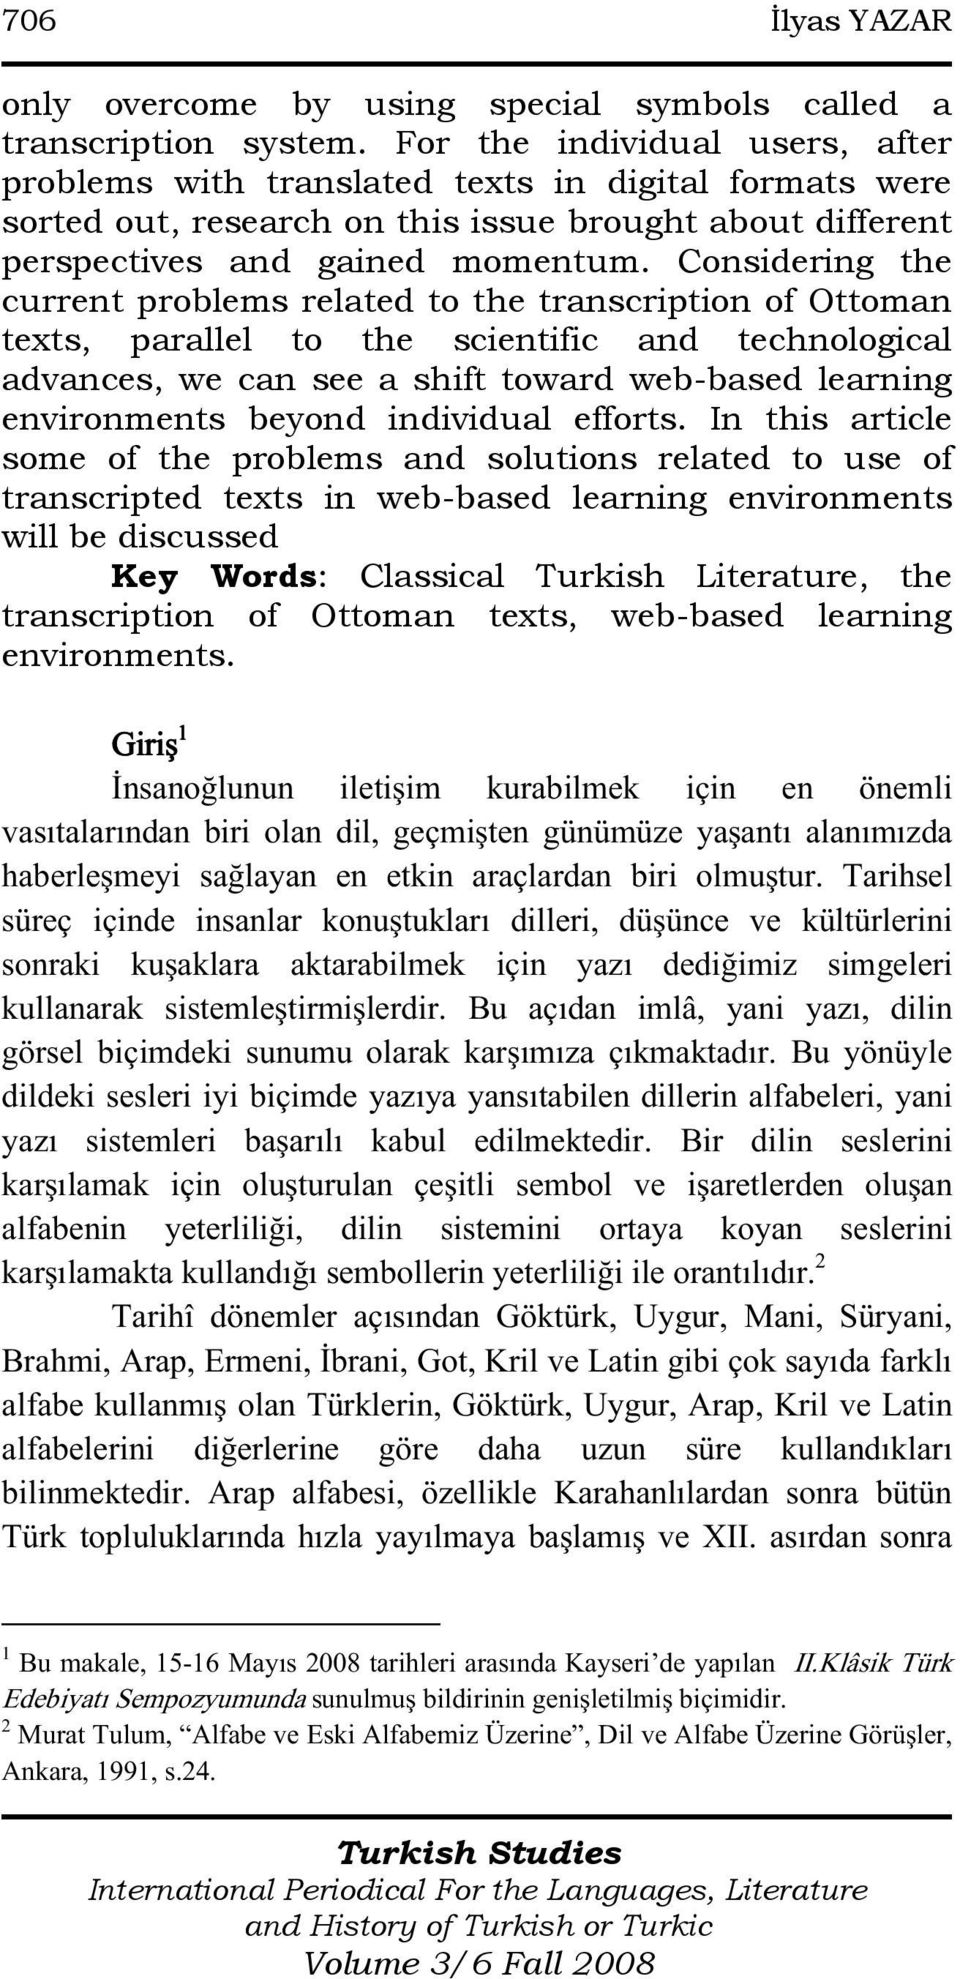 Considering the current problems related to the transcription of Ottoman texts, parallel to the scientific and technological advances, we can see a shift toward web-based learning environments beyond